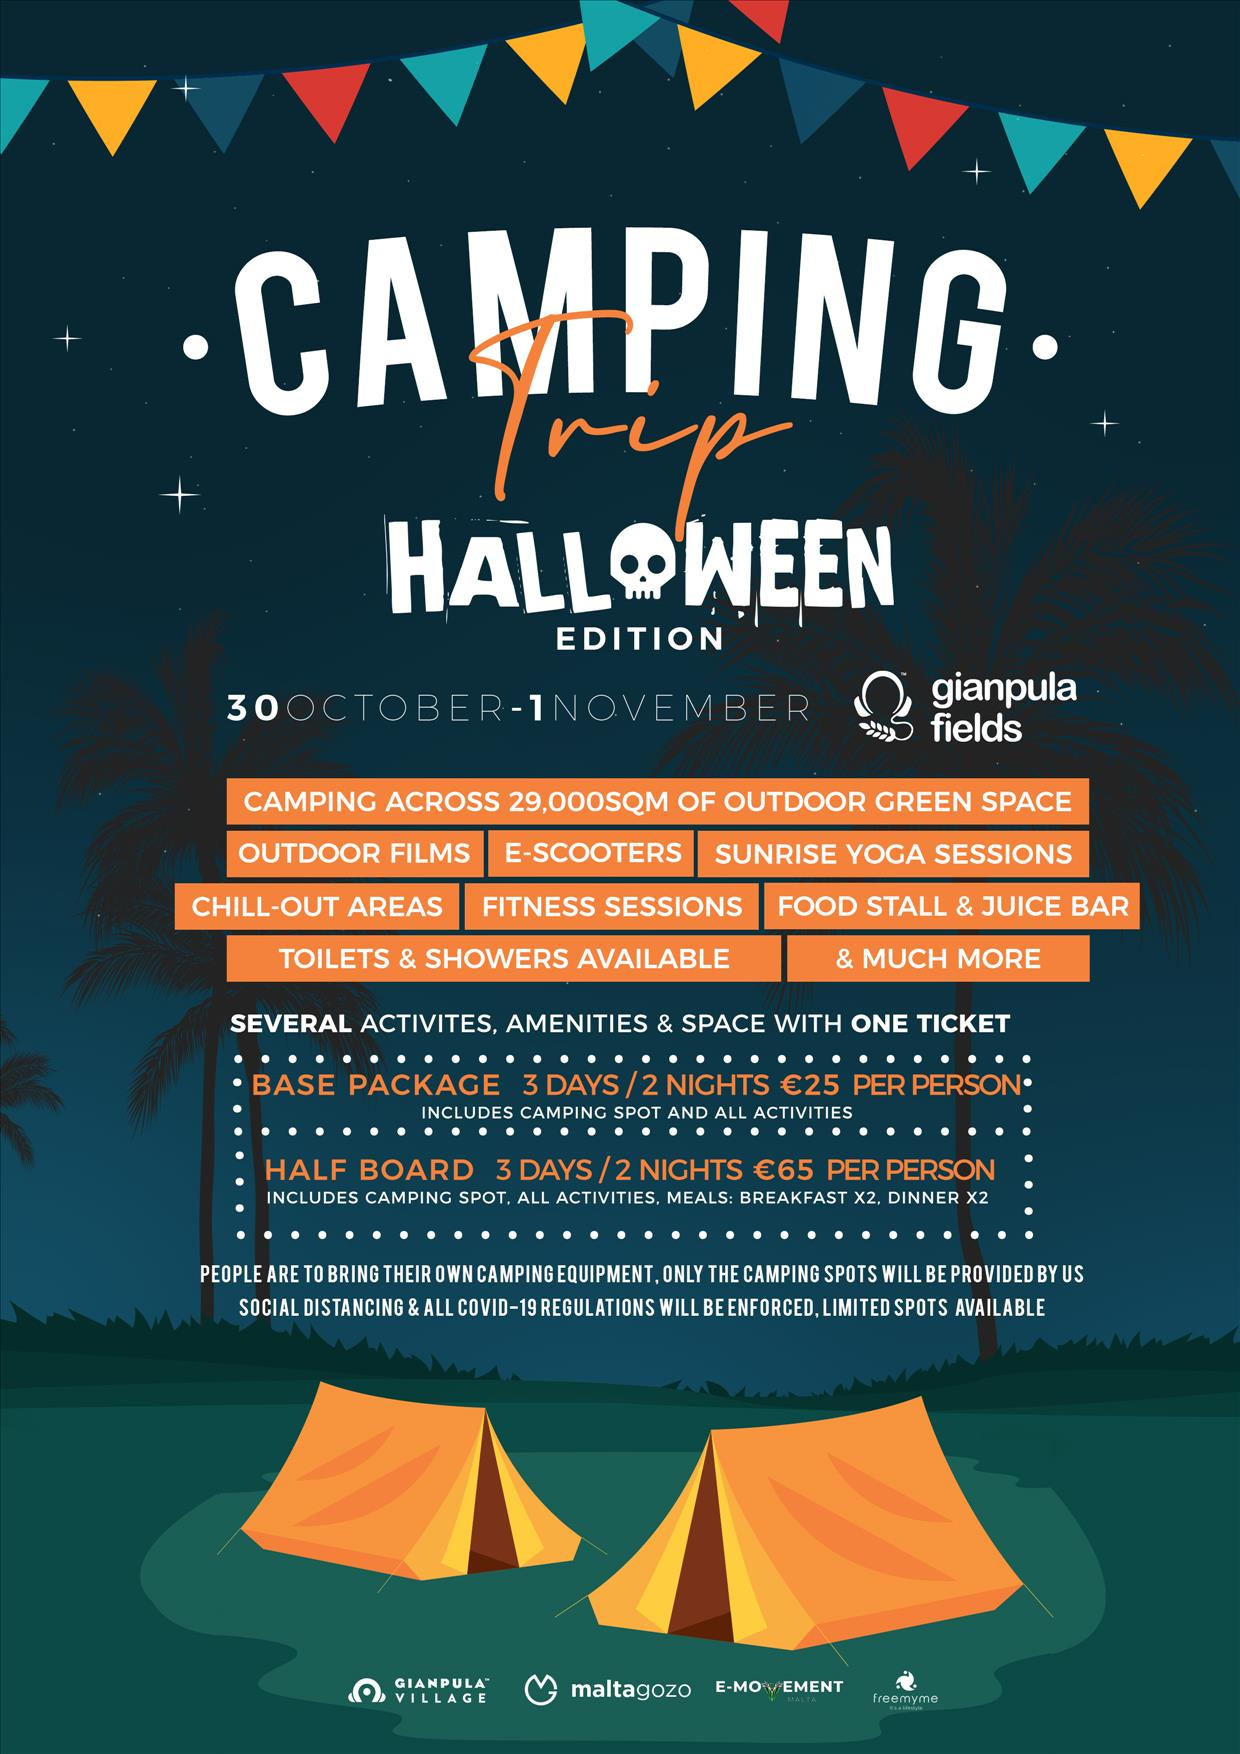 Camping Trip Halloween Edition